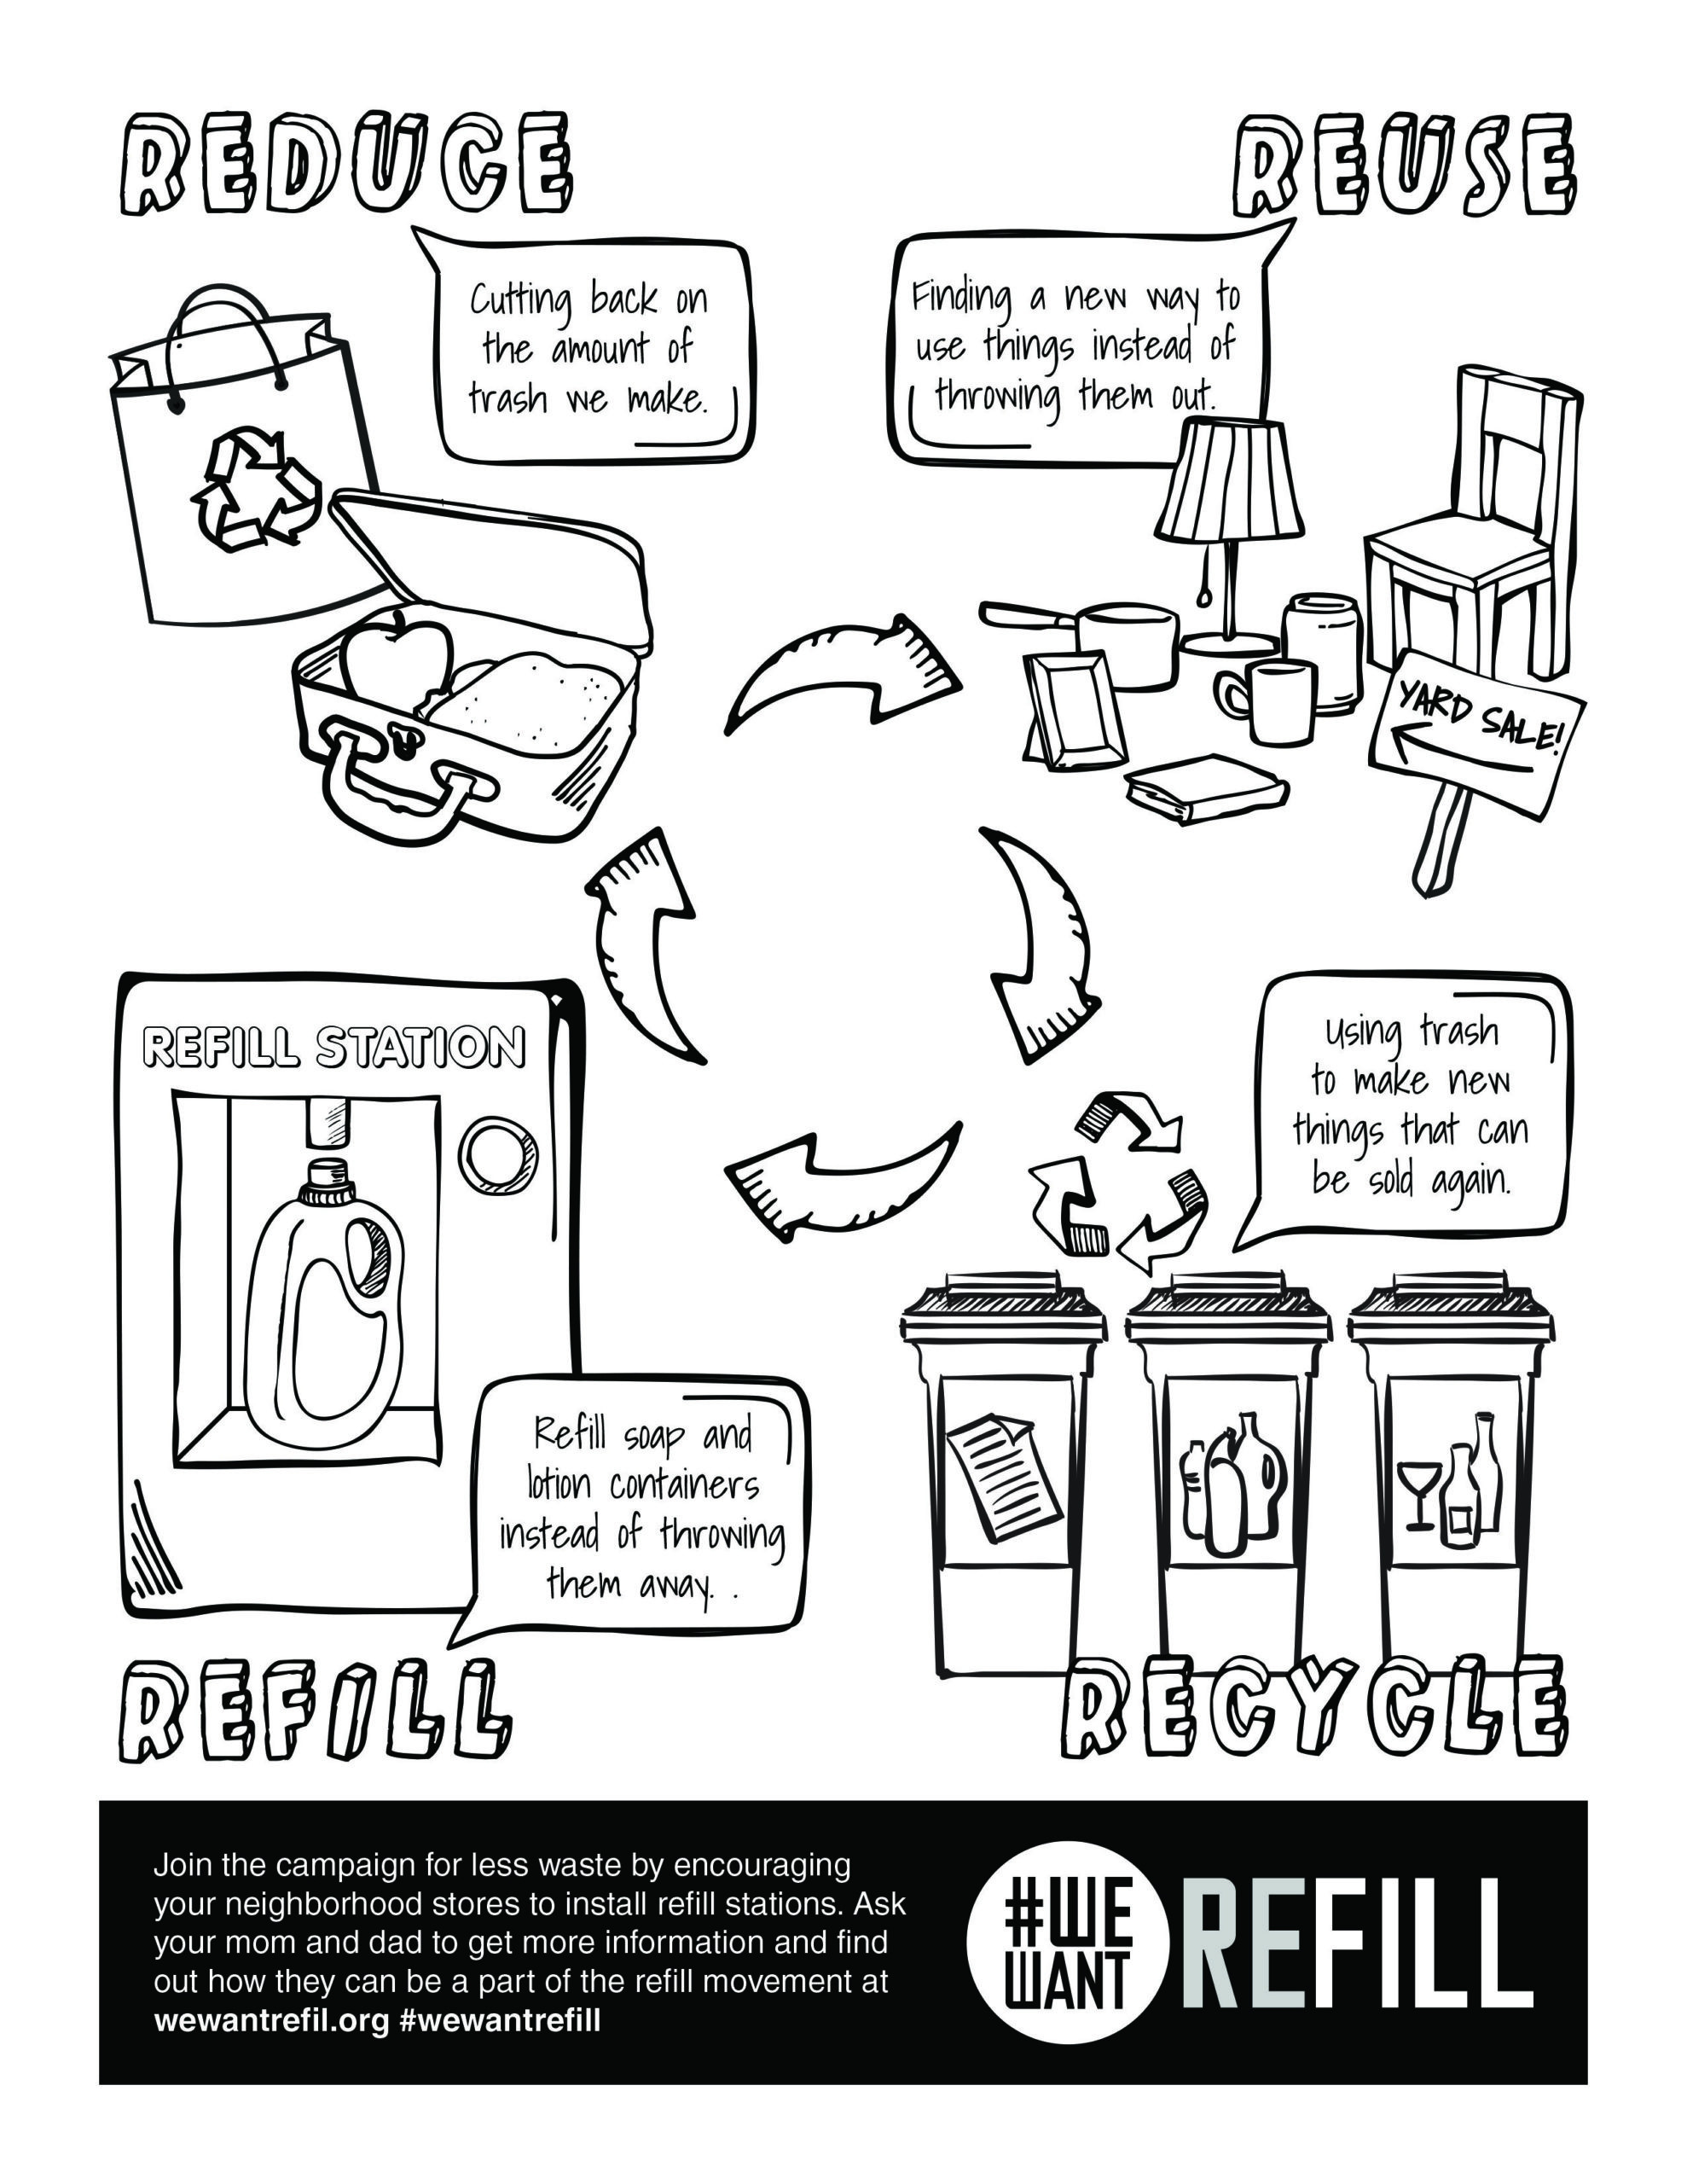 High School Spanish Worksheets Free Downloadable Coloring for Kids Reuse Recycle